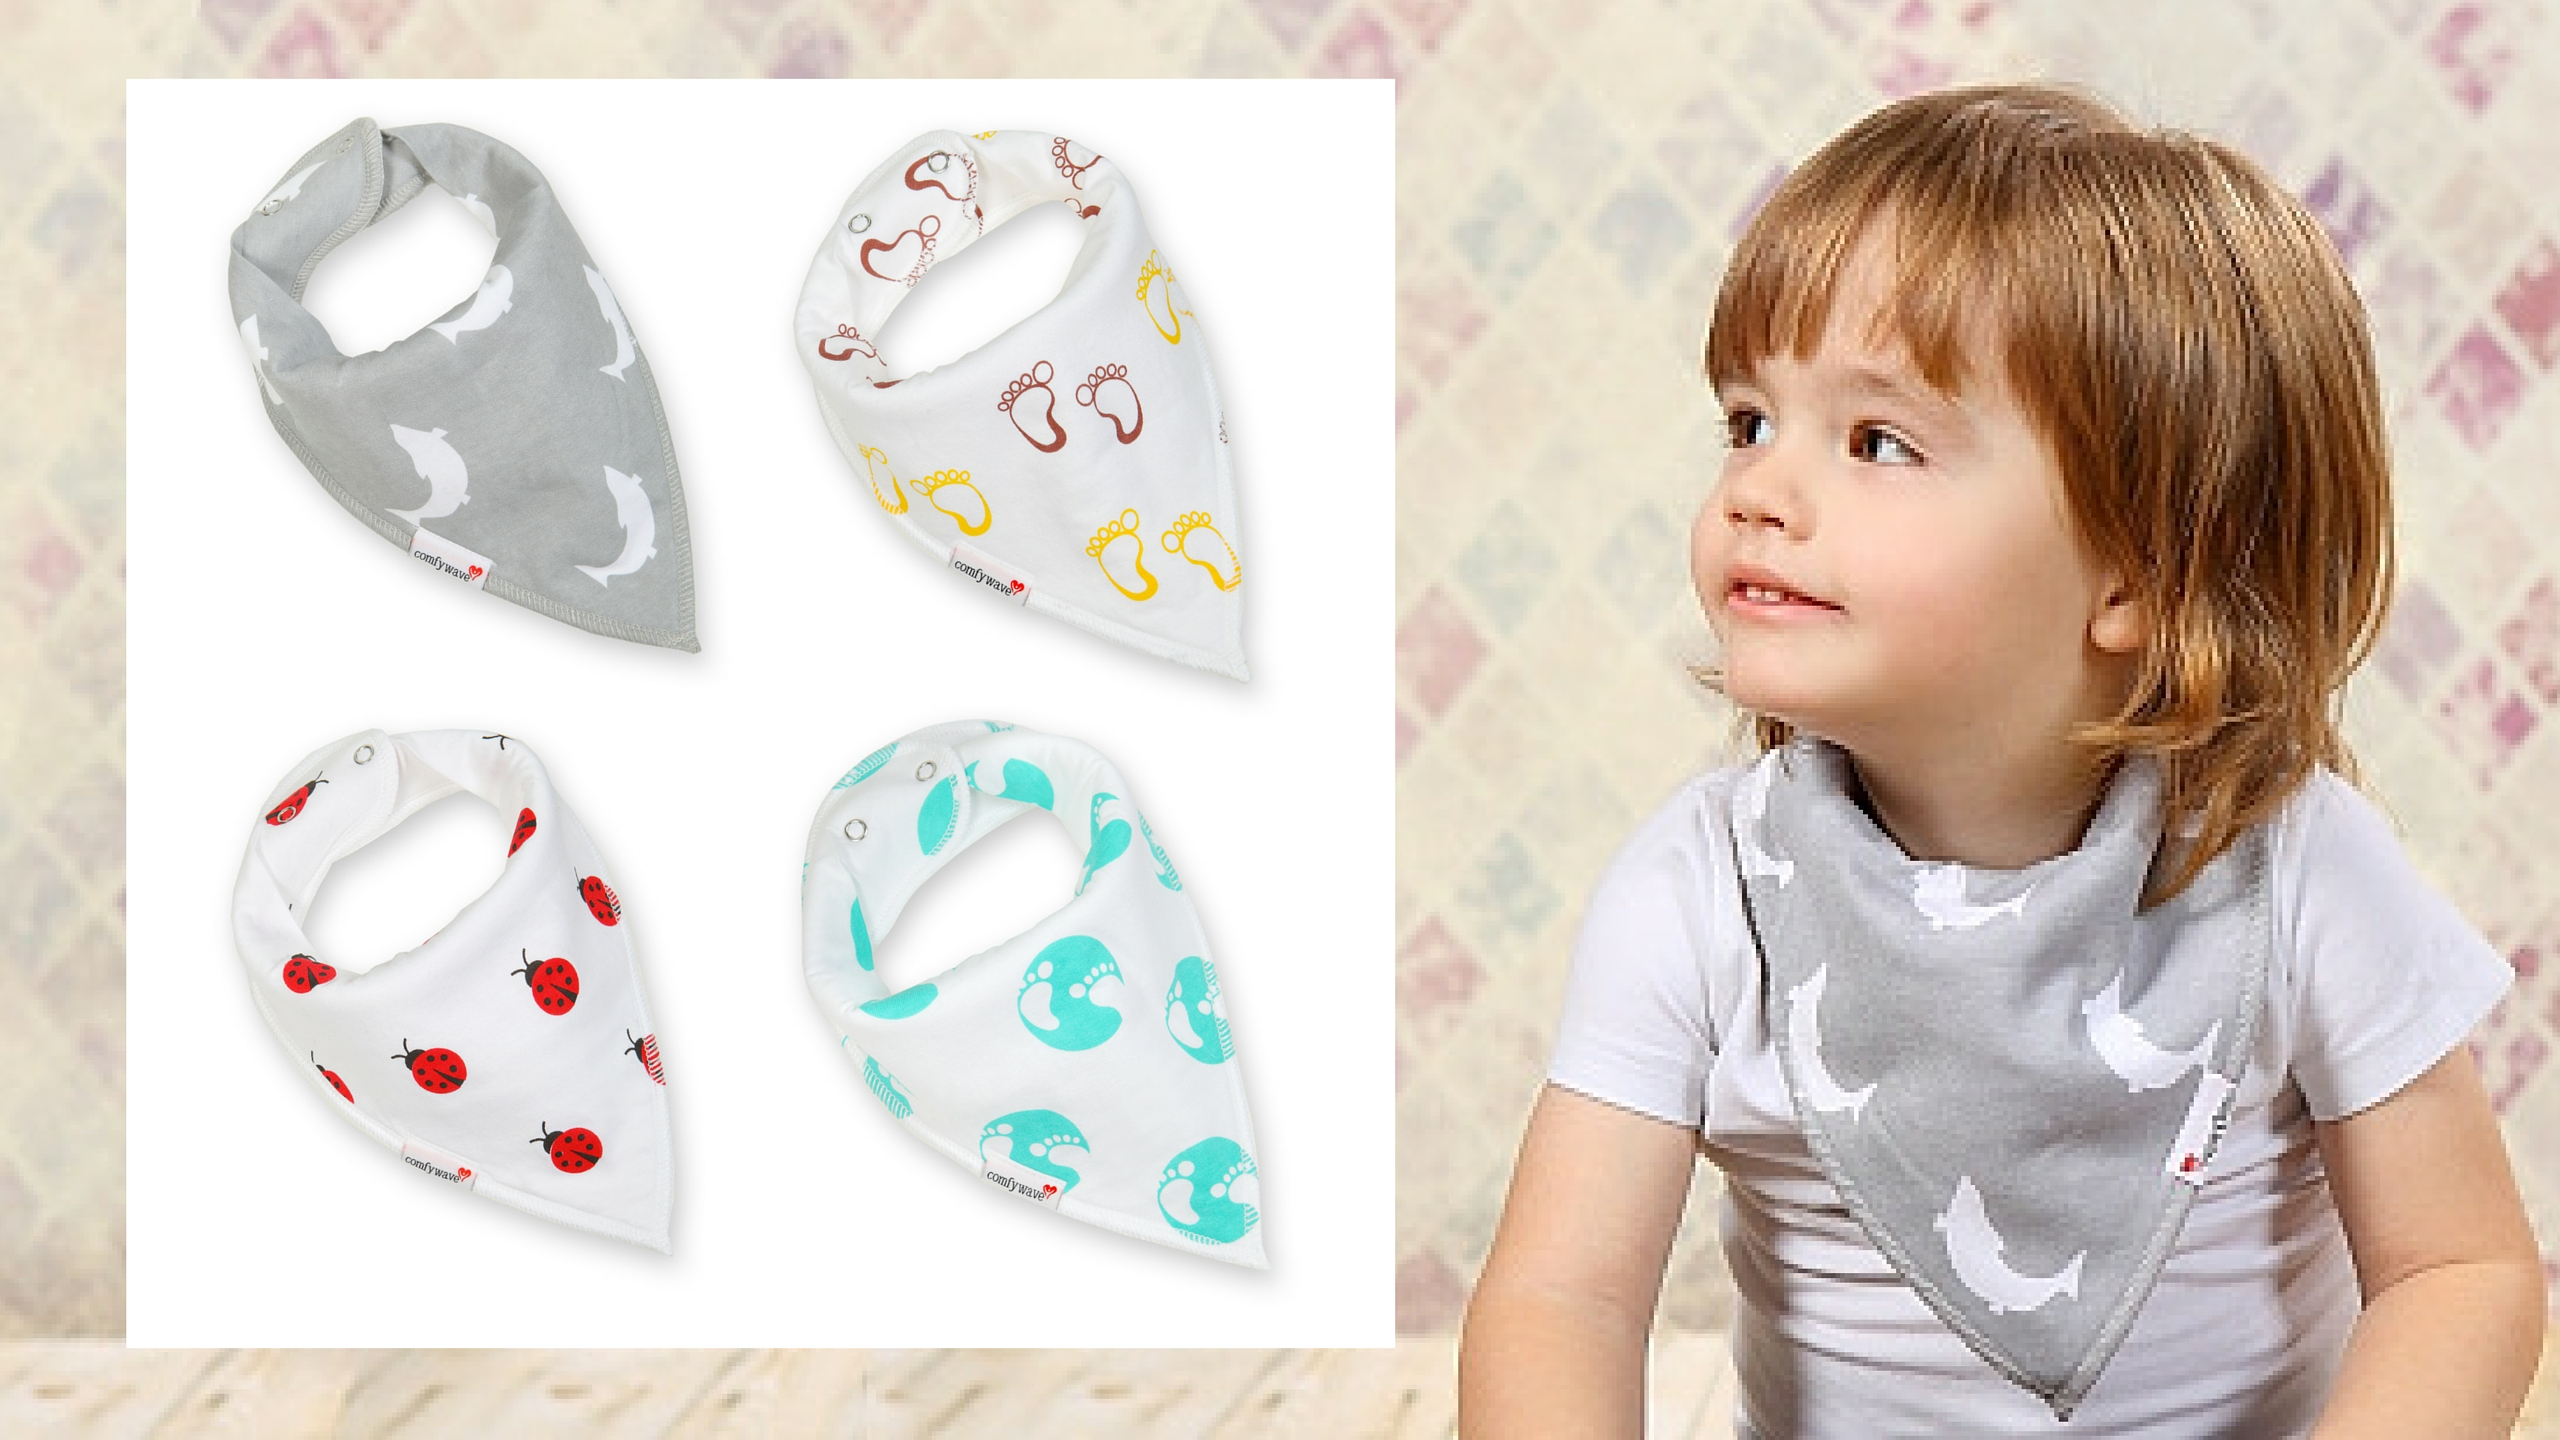 Comfywave announces gift sets of four bandana baby bibs